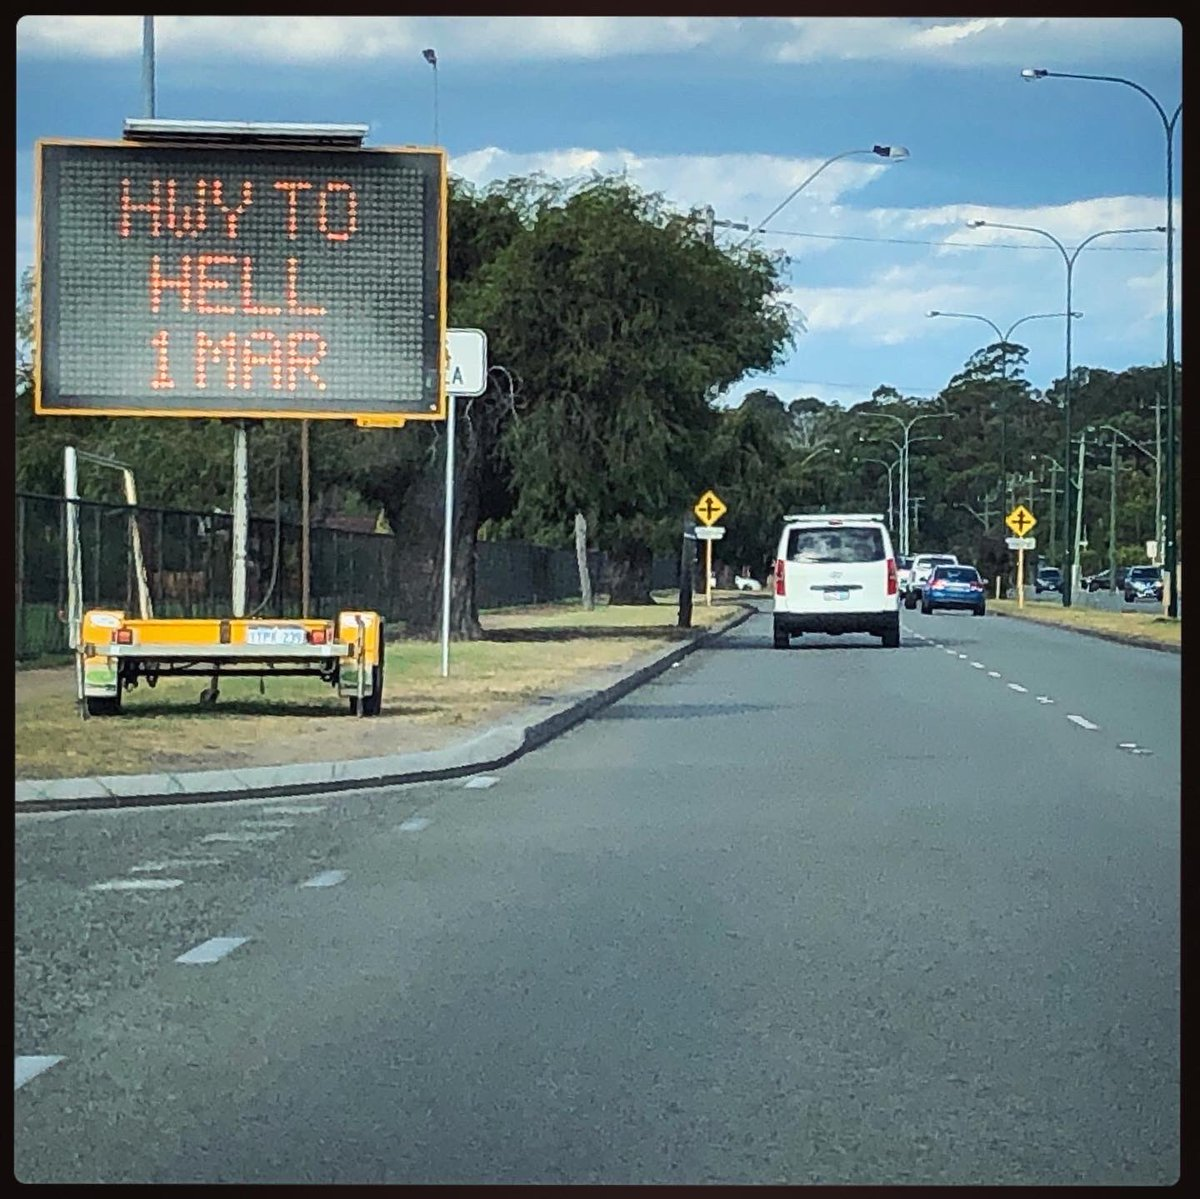 Traffic alert: Hell ahead, public welcome @perthfest, Canning Highway, Western Australia. . . . . #justanotherdayinwa #highwaytohell #highwaytoheaven #canninghighway #perthfestival #acdc<br>http://pic.twitter.com/qOMashNxCs